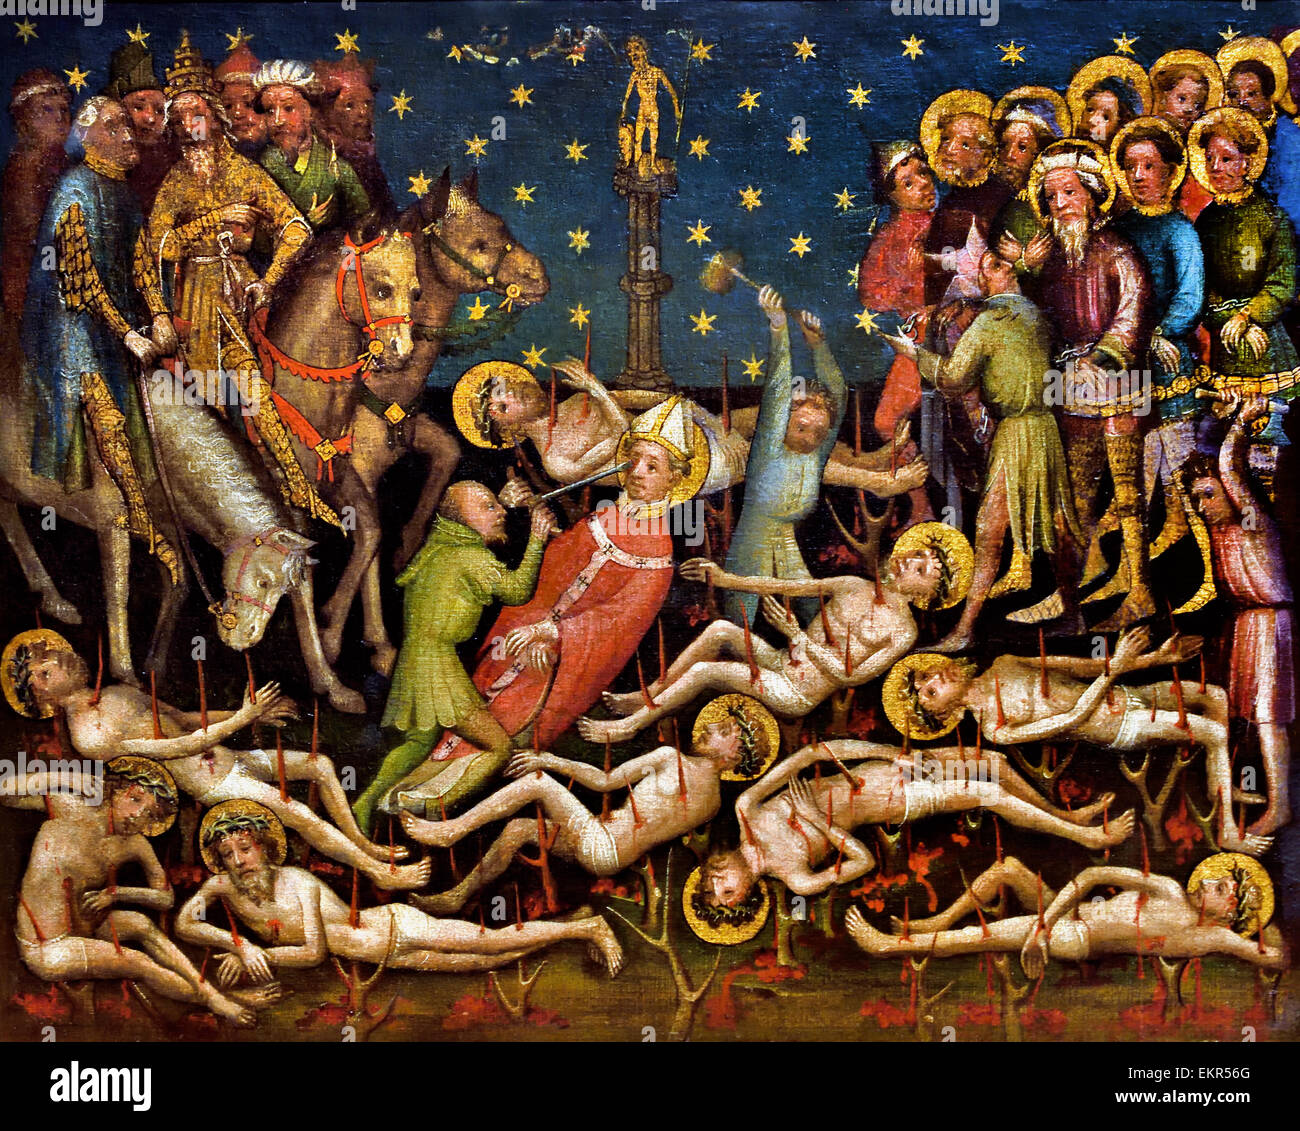 Martyrdom of the Ten Thousend Christians 1410 Meister ( Master ) Der Kleinen Passion Cologne 1400-1420 German Germany - Stock Image